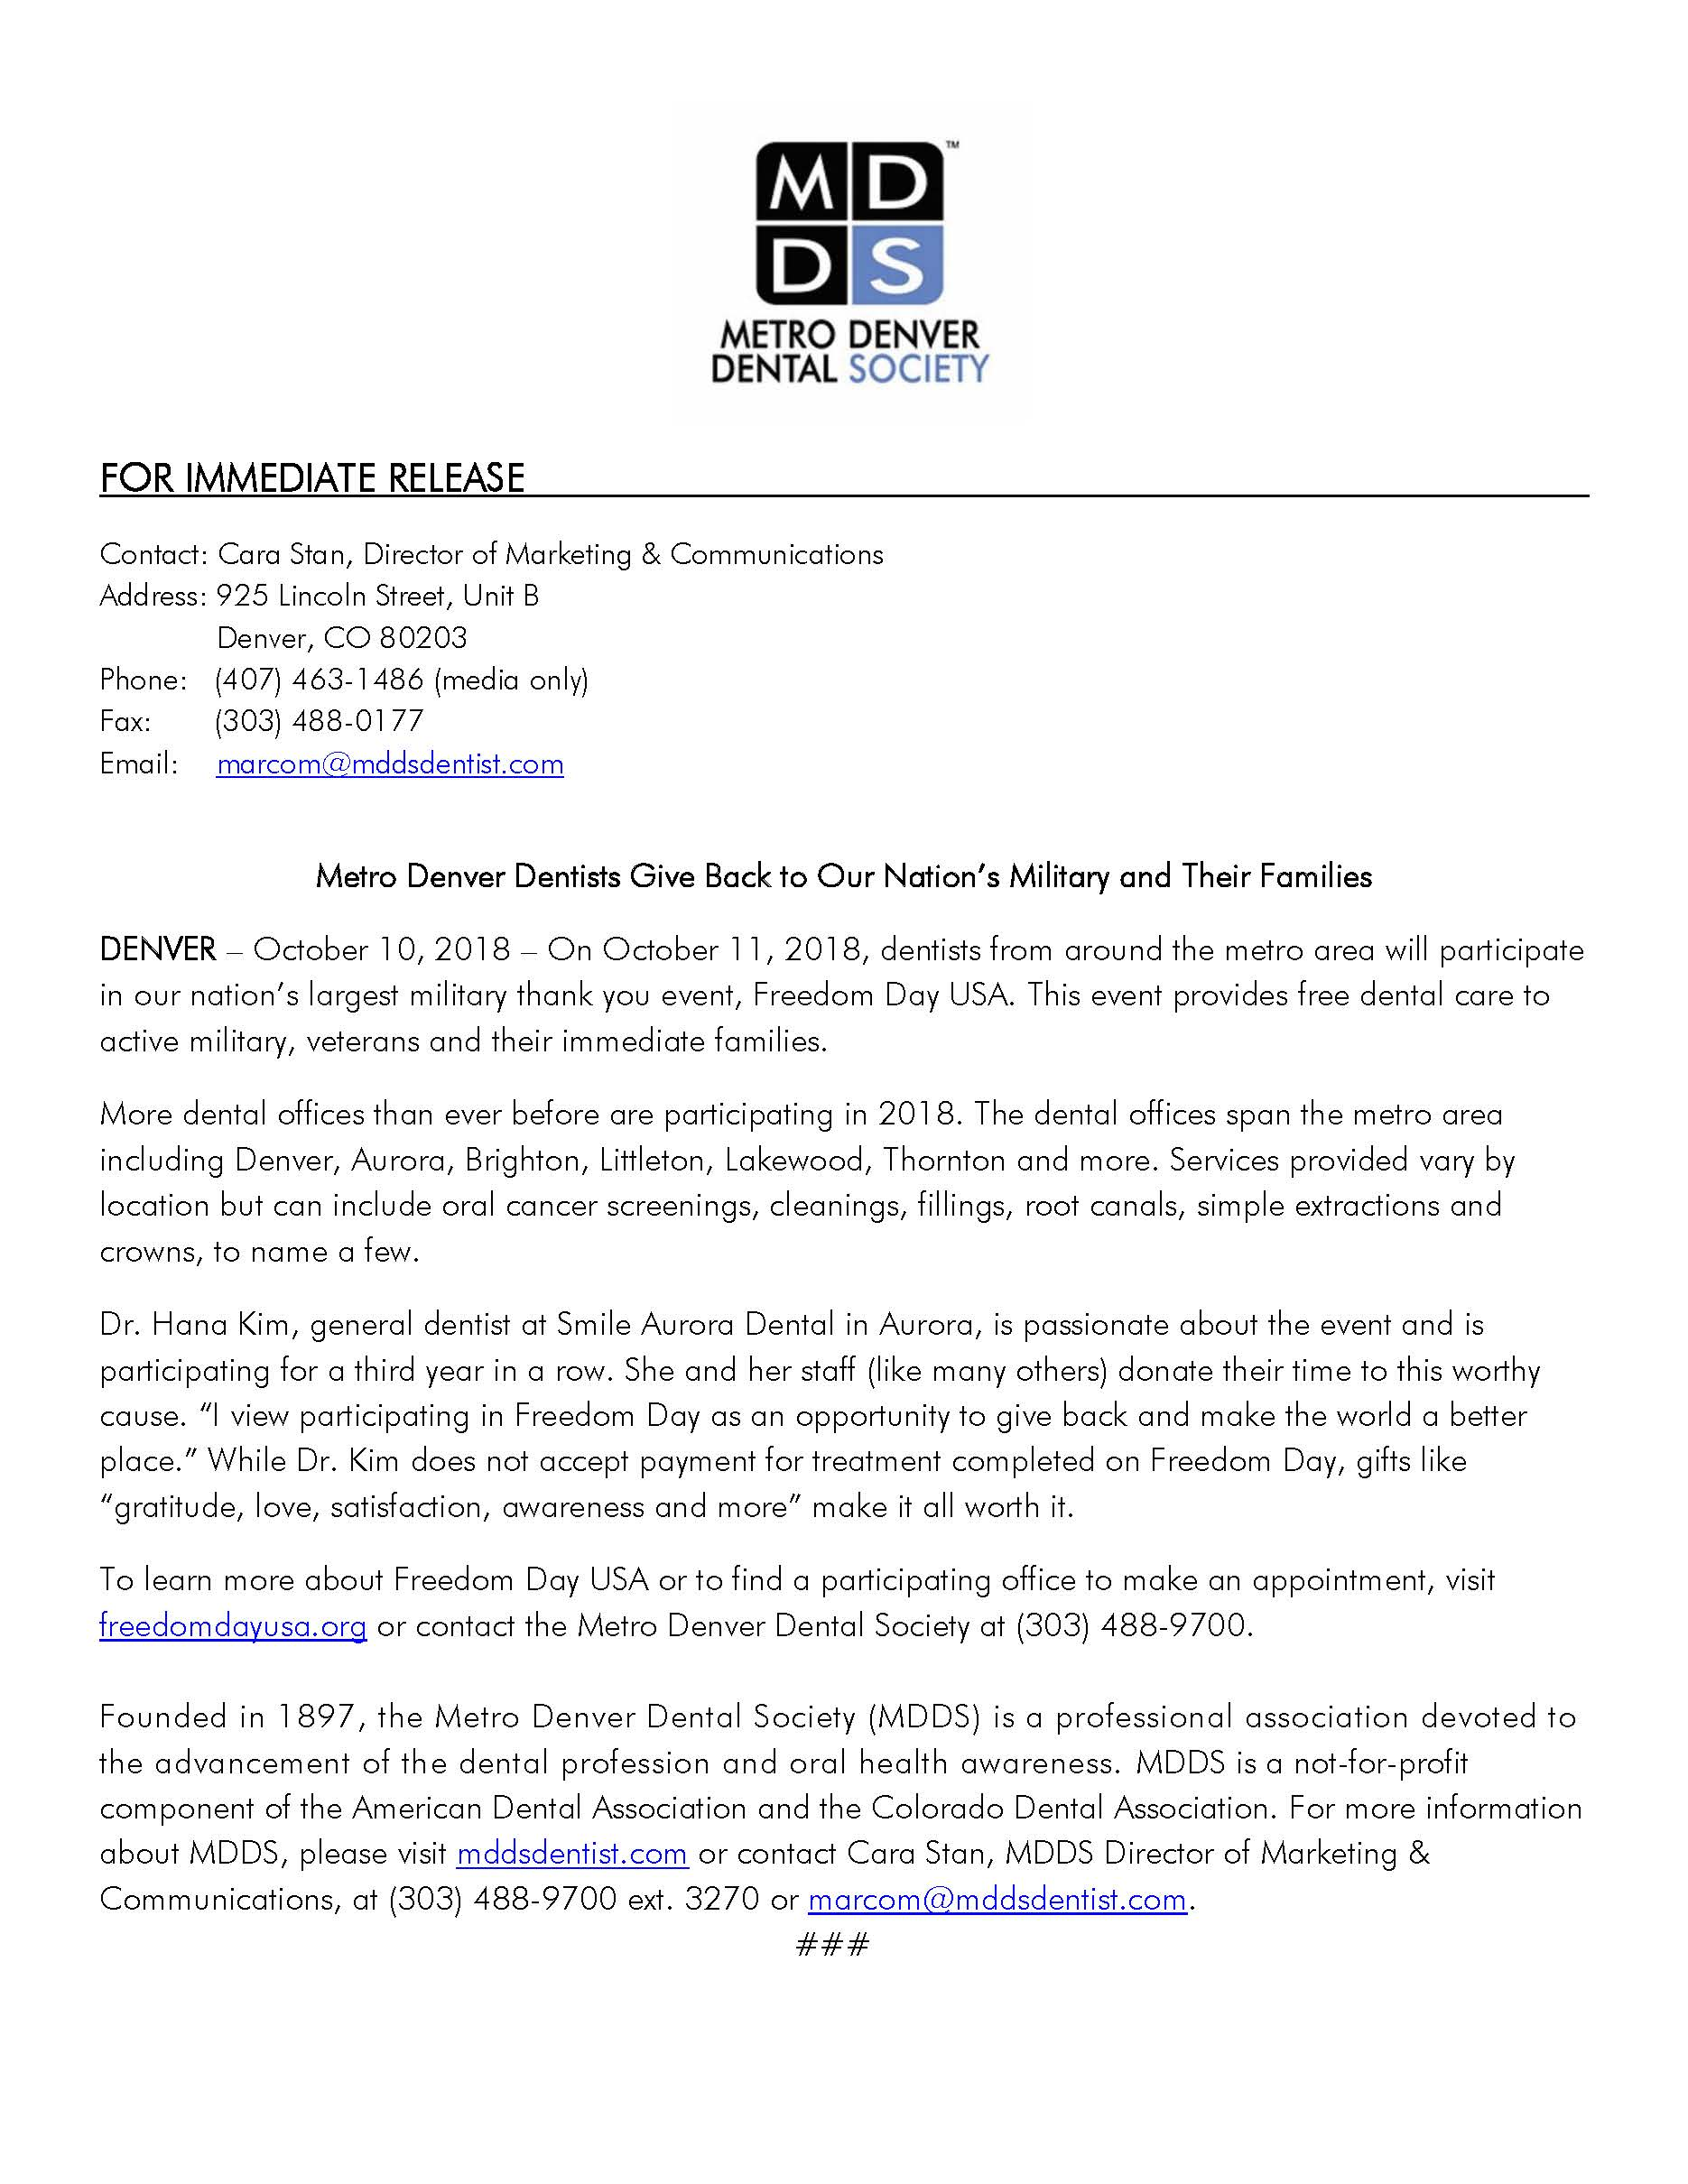 Press Release: Kids in Need of Dentistry and the Metro Denver Dental Society Partner to Offer Free Dental Care to Families